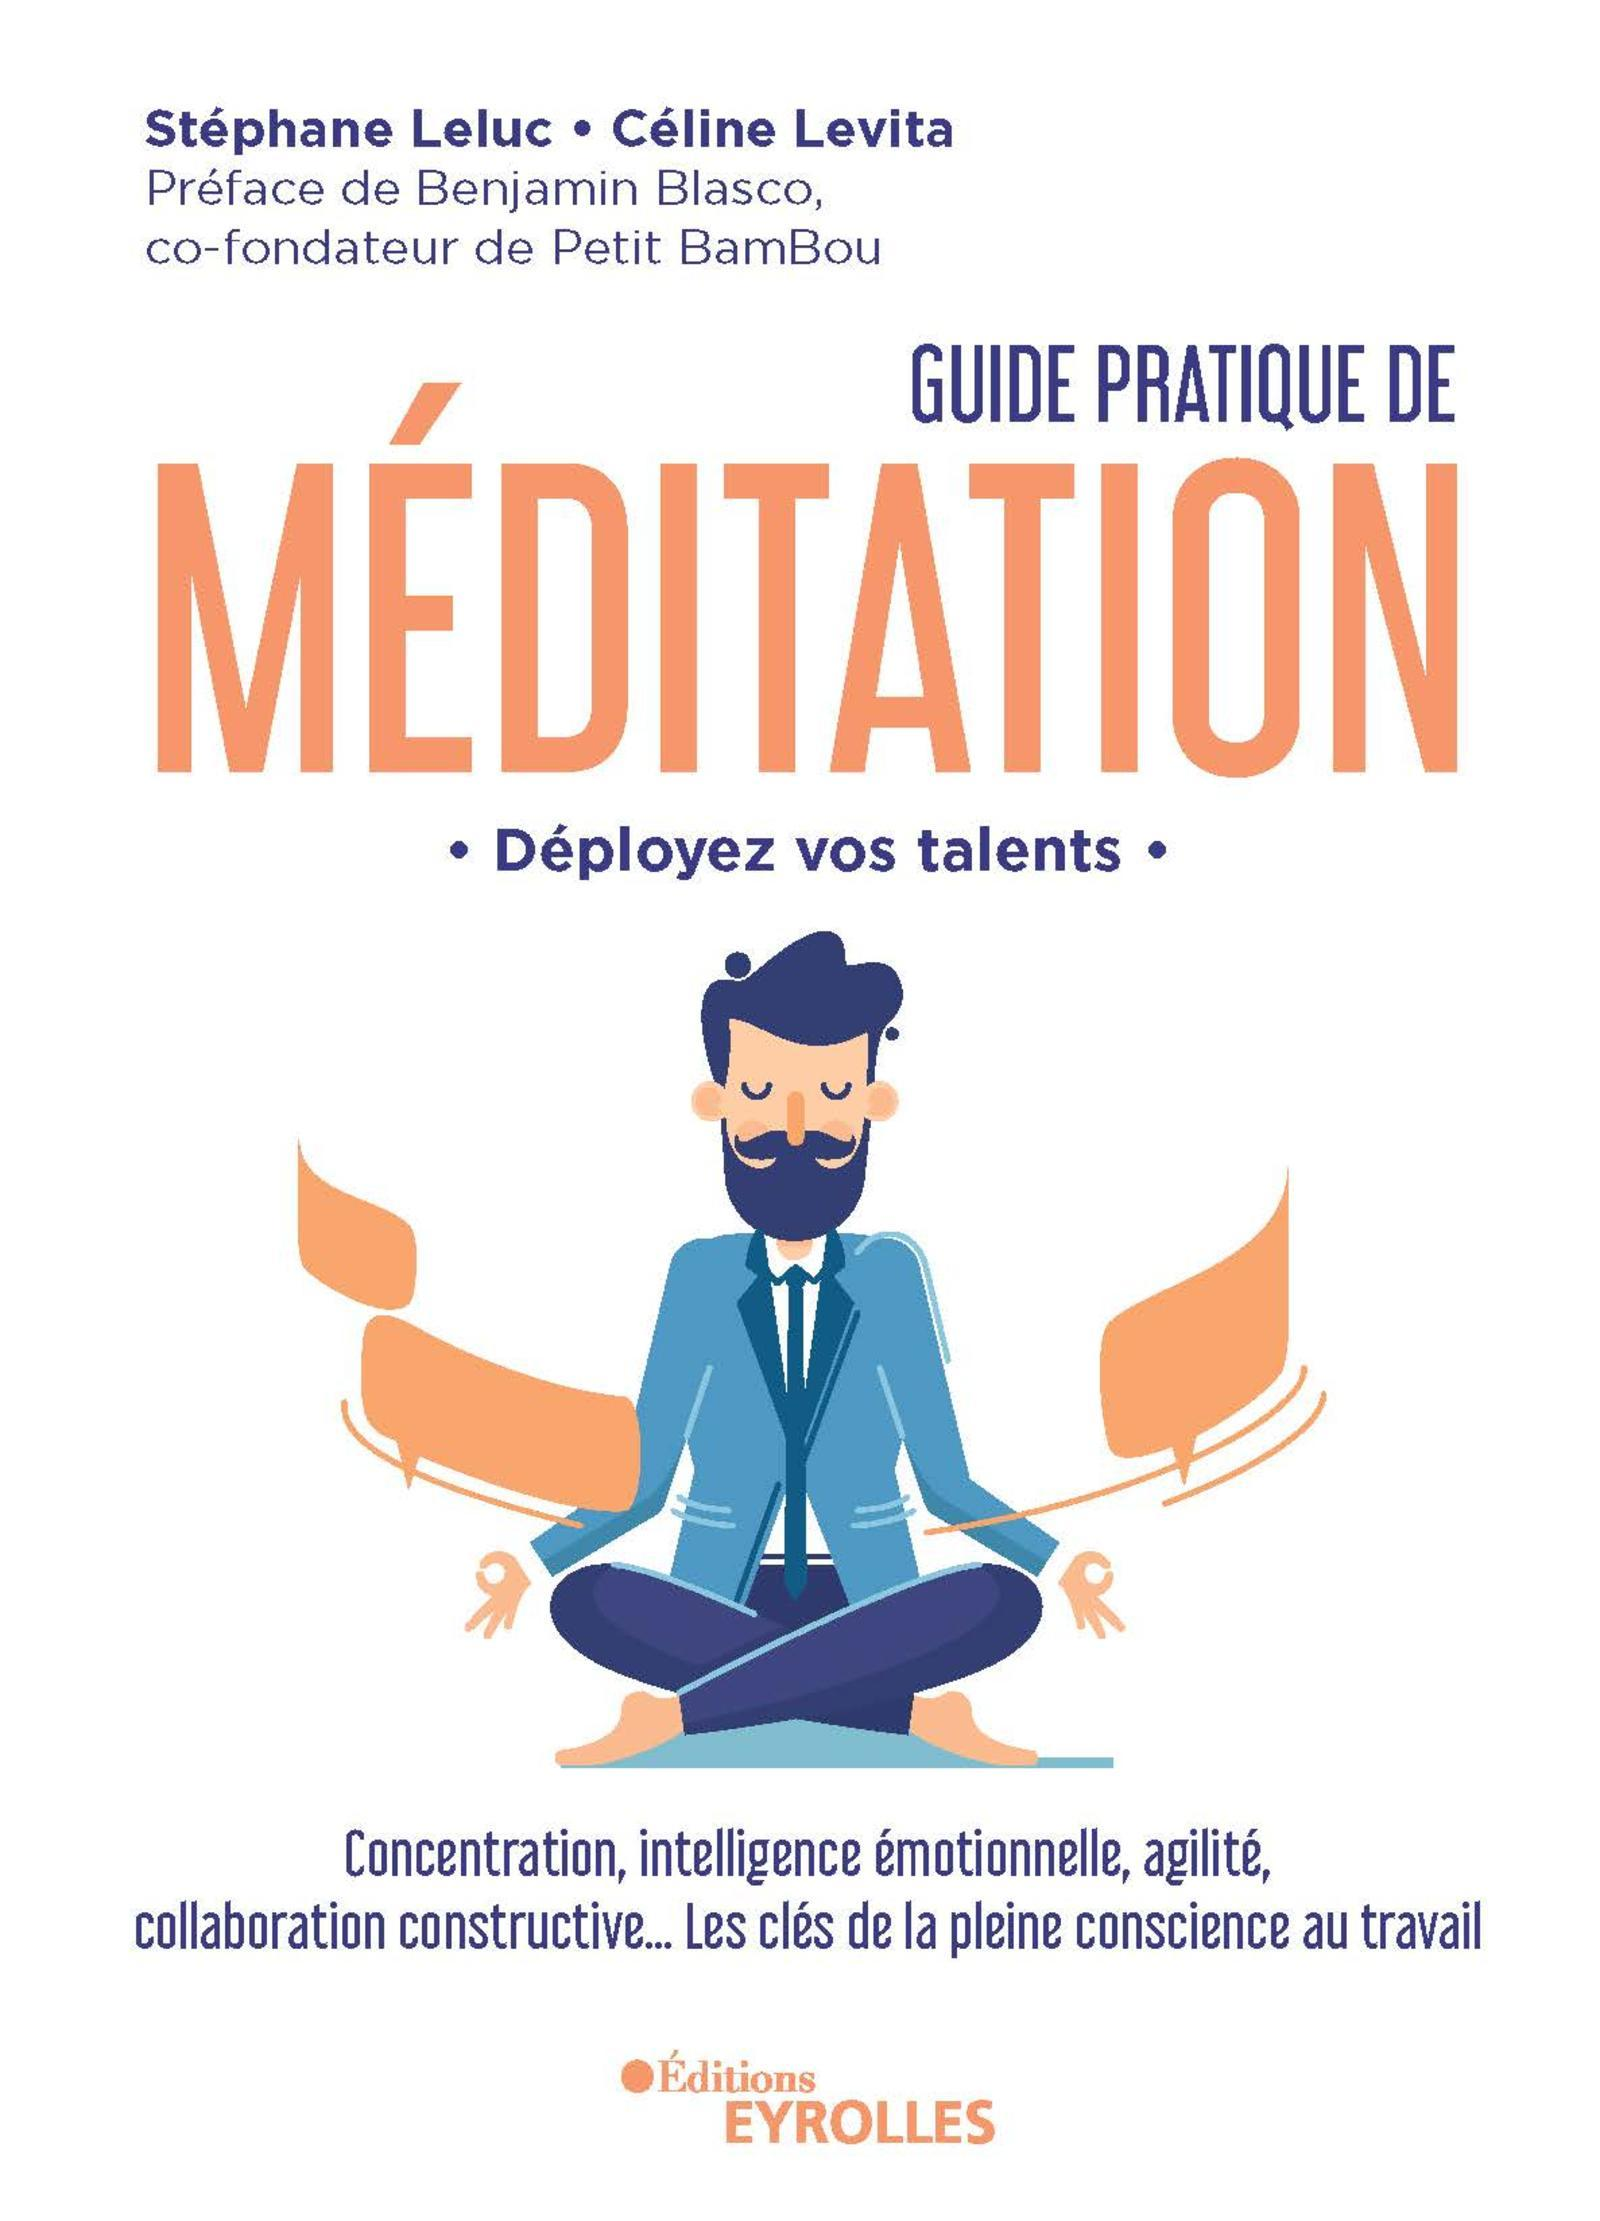 GUIDE PRATIQUE DE MEDITATION - DEPLOYEZ VOS TALENTS / CONCENTRATION, INTELLIGENCE EMOTIONNELLE, AGIL